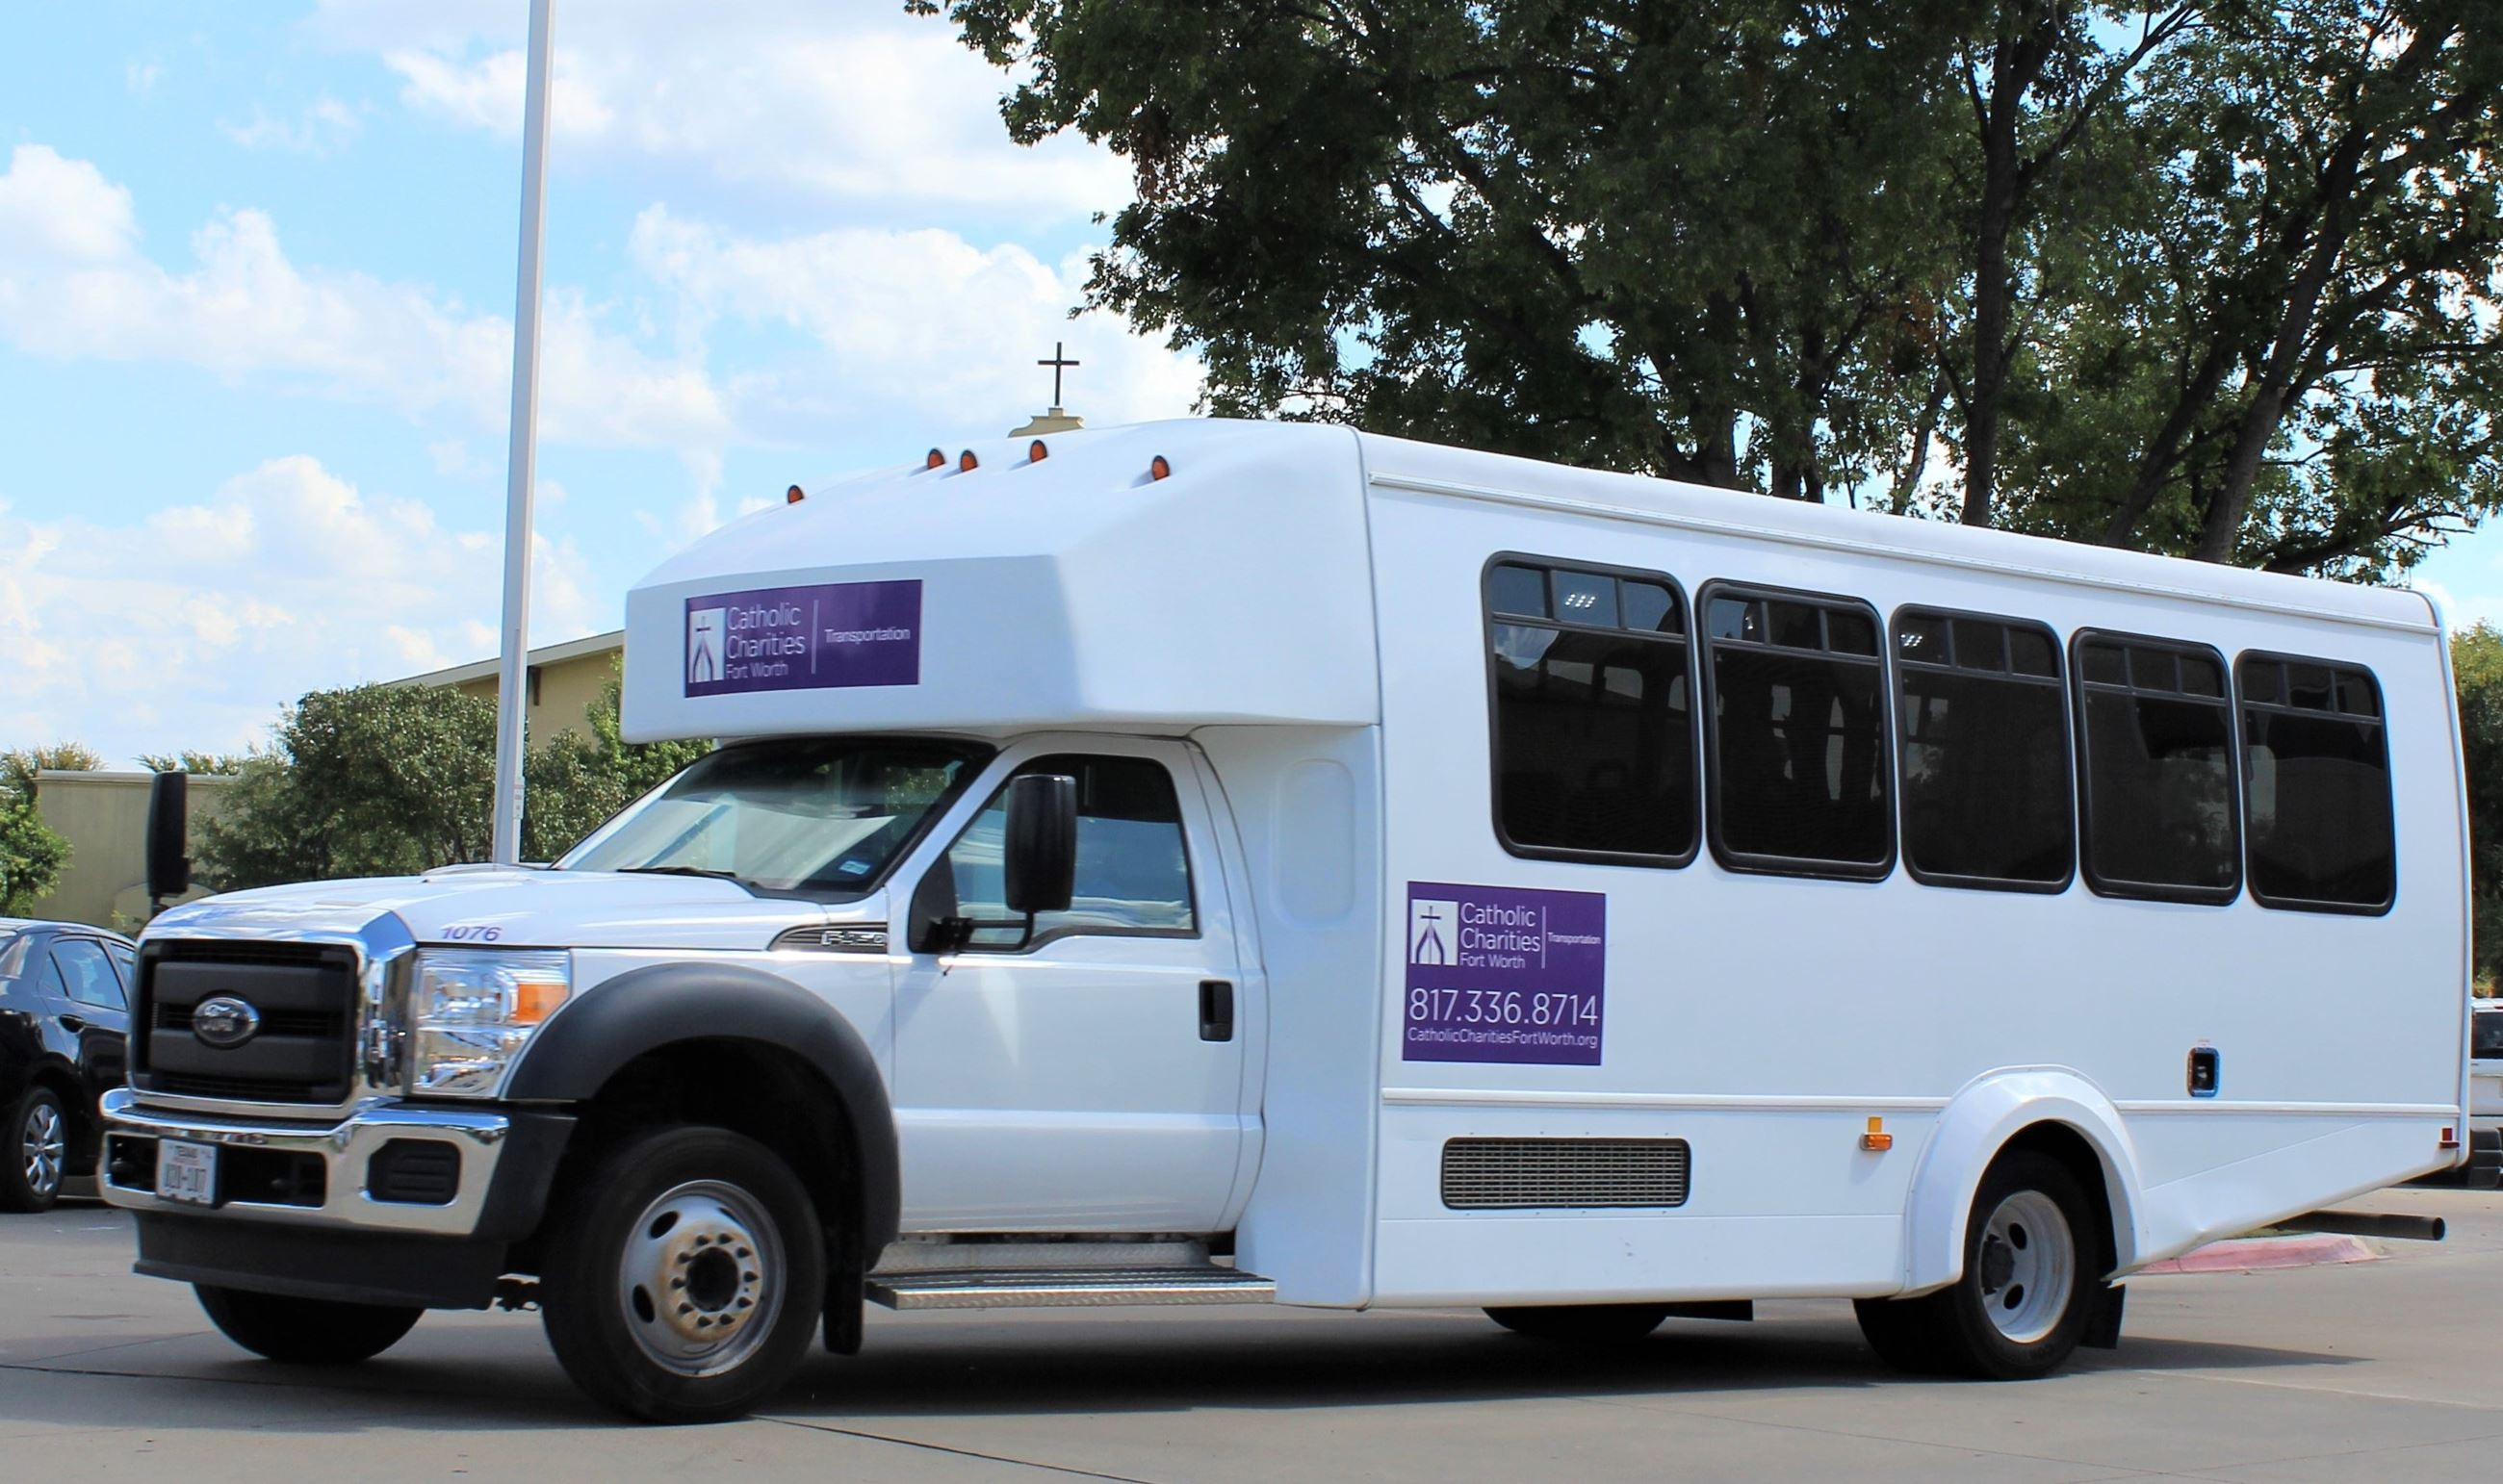 Catholic Charities Bus - Copy